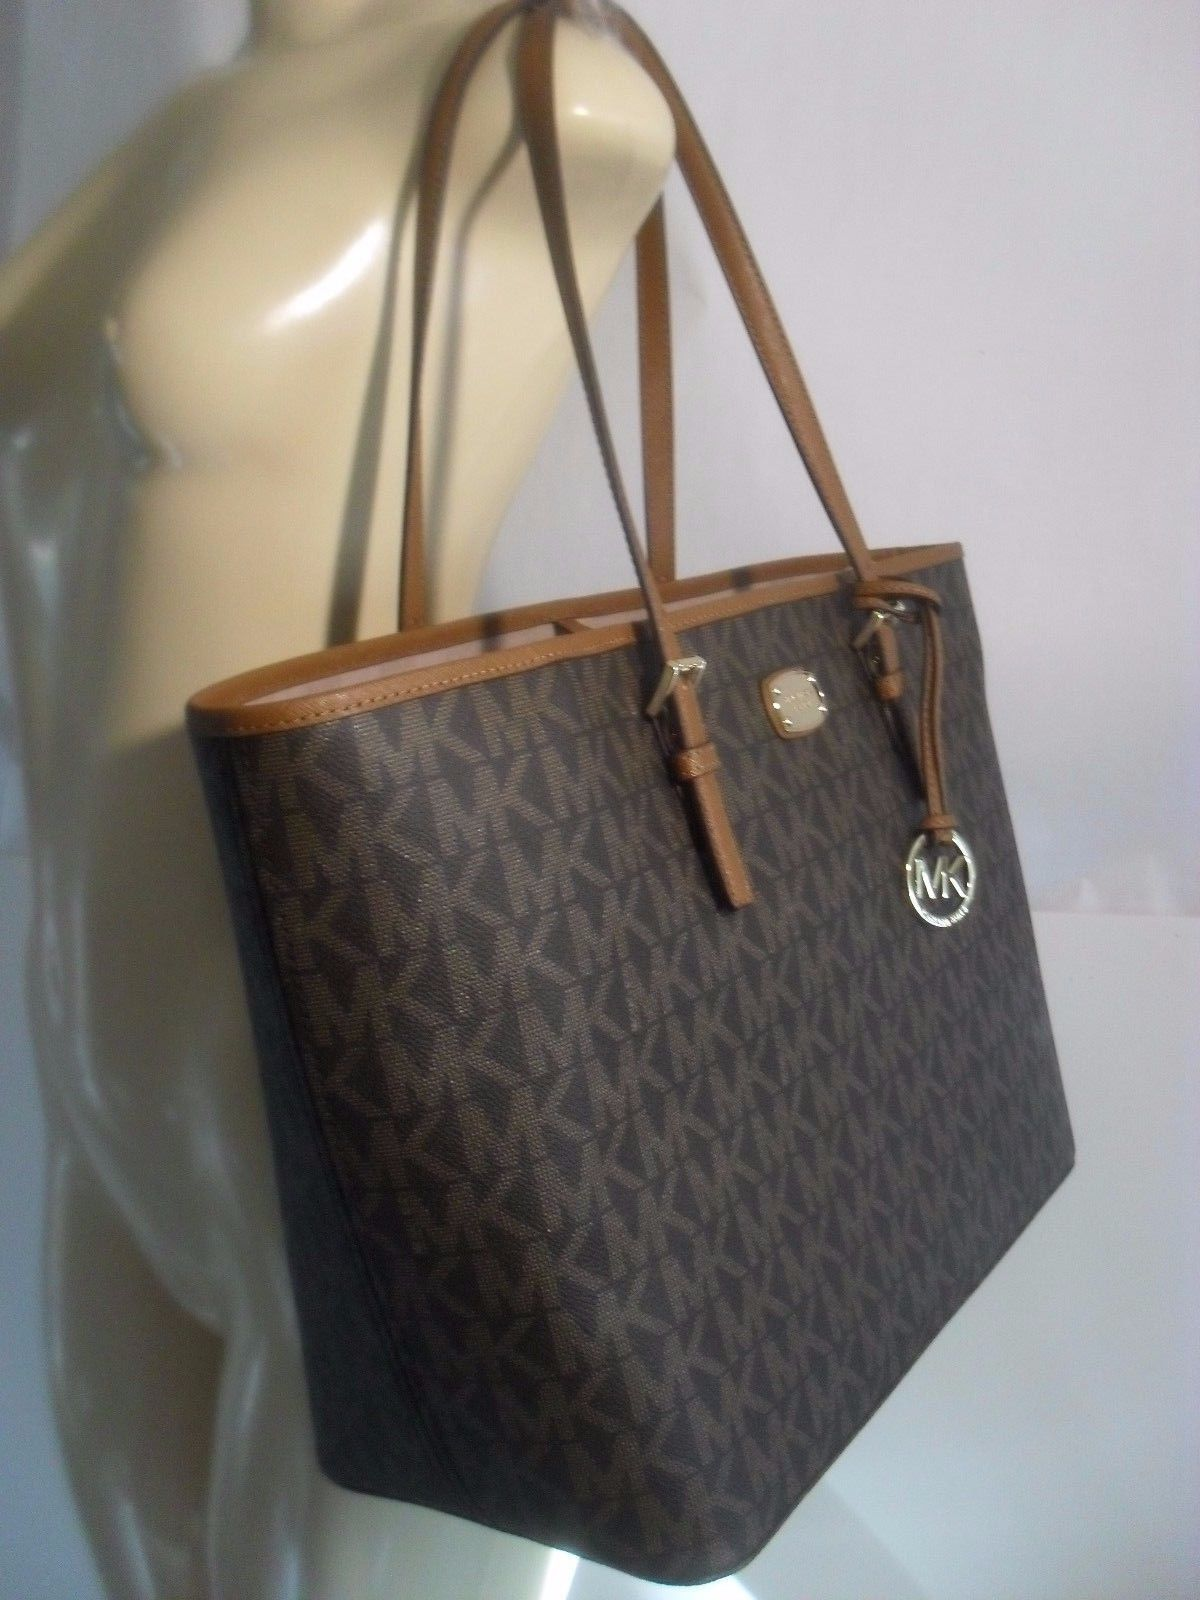 b73c28cc7a38 NWT Michael Kors Jet Set Brown MK Signature Carryall PVC Large Tote Shopper  Bag  129.95 https